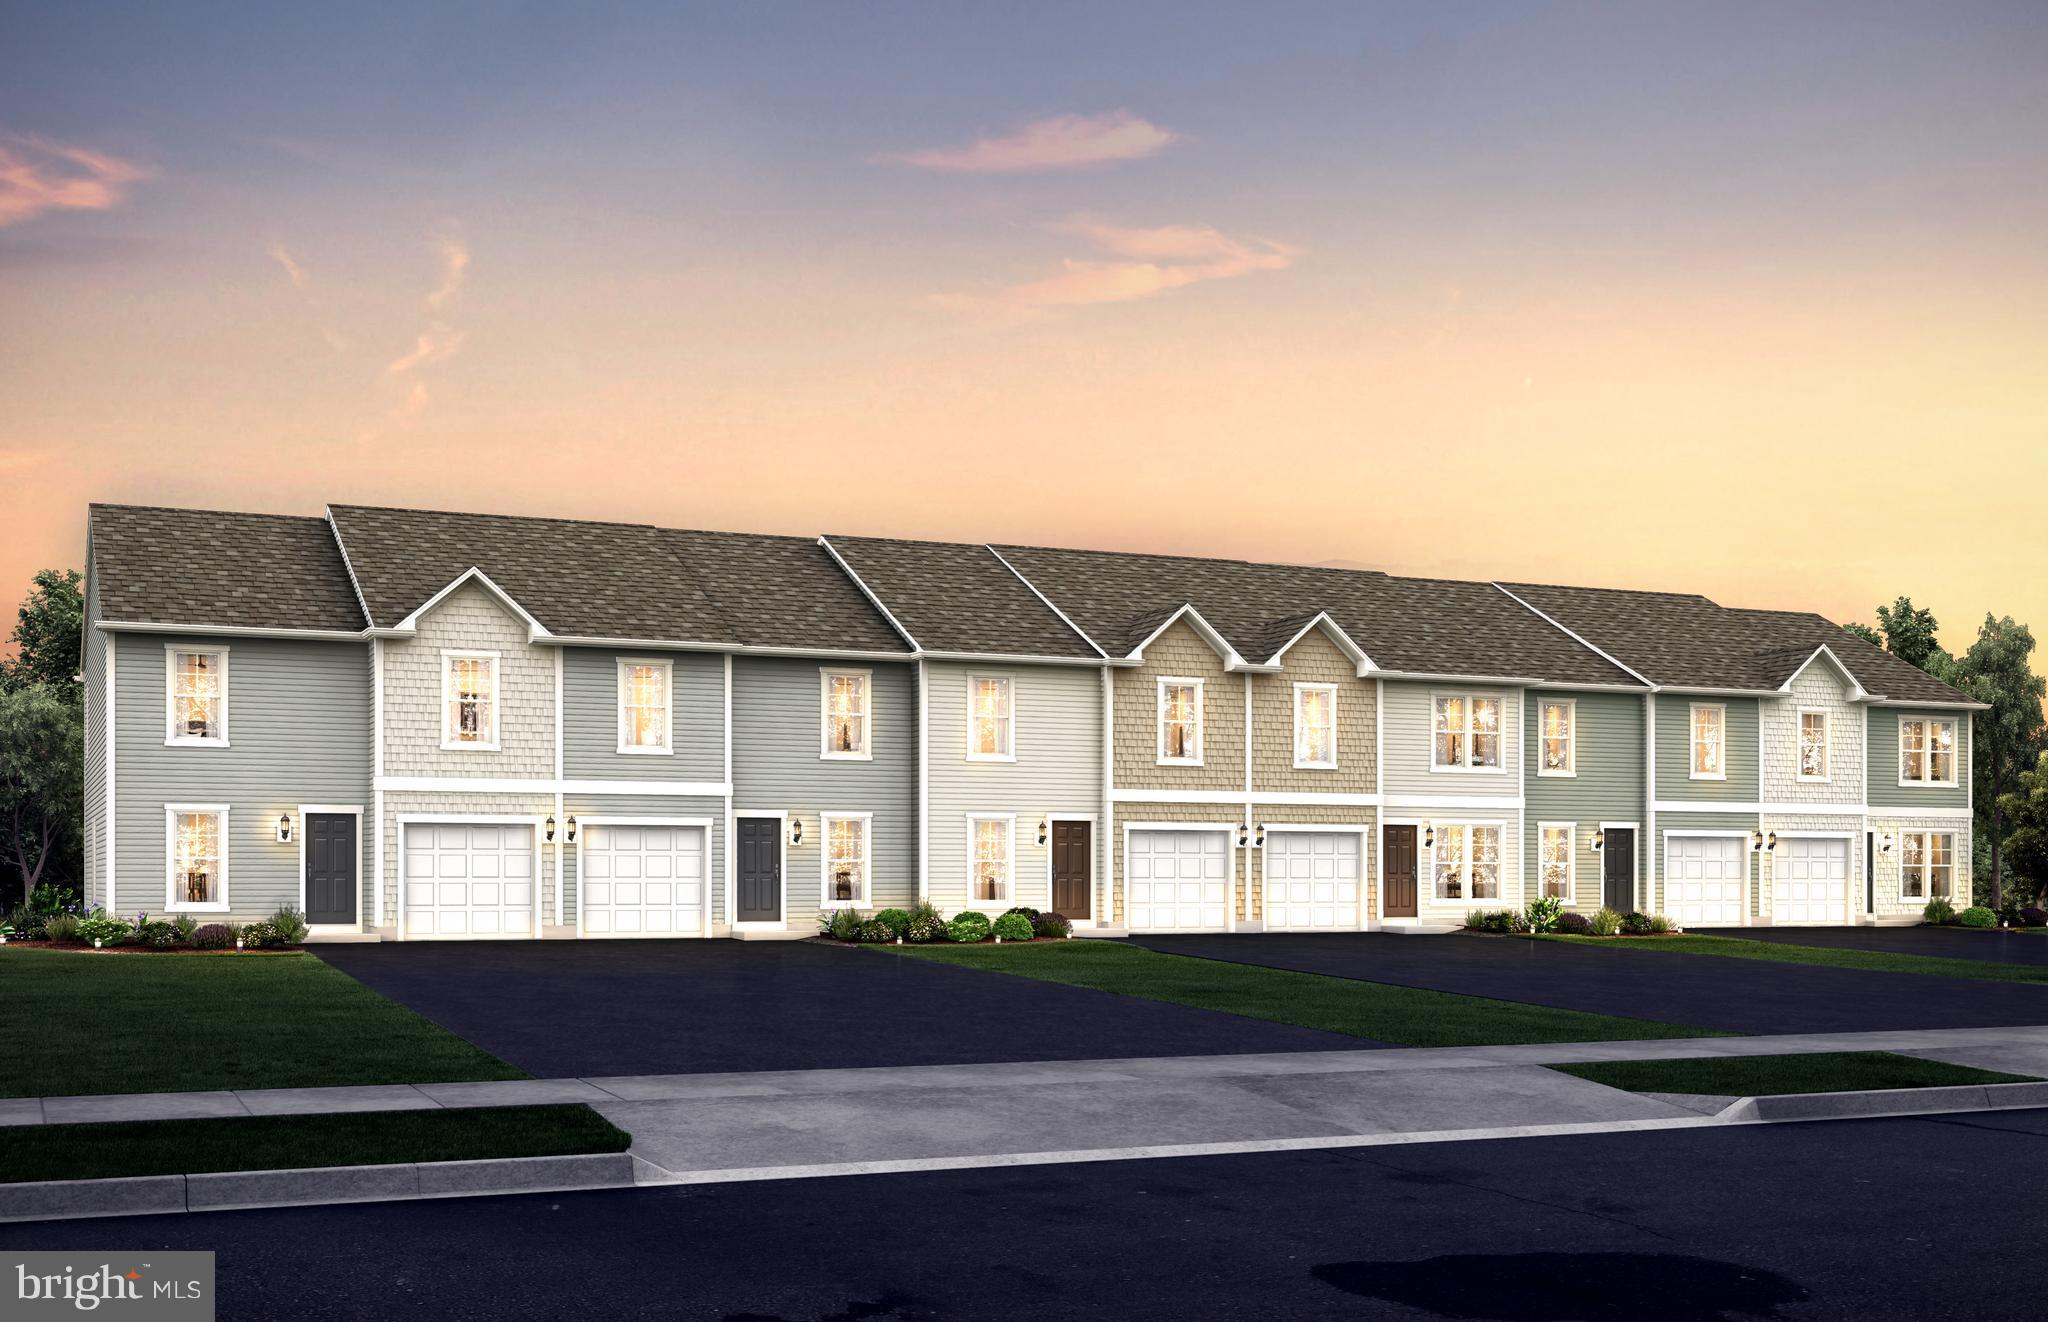 BEAUTIFUL MODEL HOME AT DECATUR FARM! UPGRADES INCLUDE STAINLESS STEEL APPLIANCES, GRANITE PACKAGE,